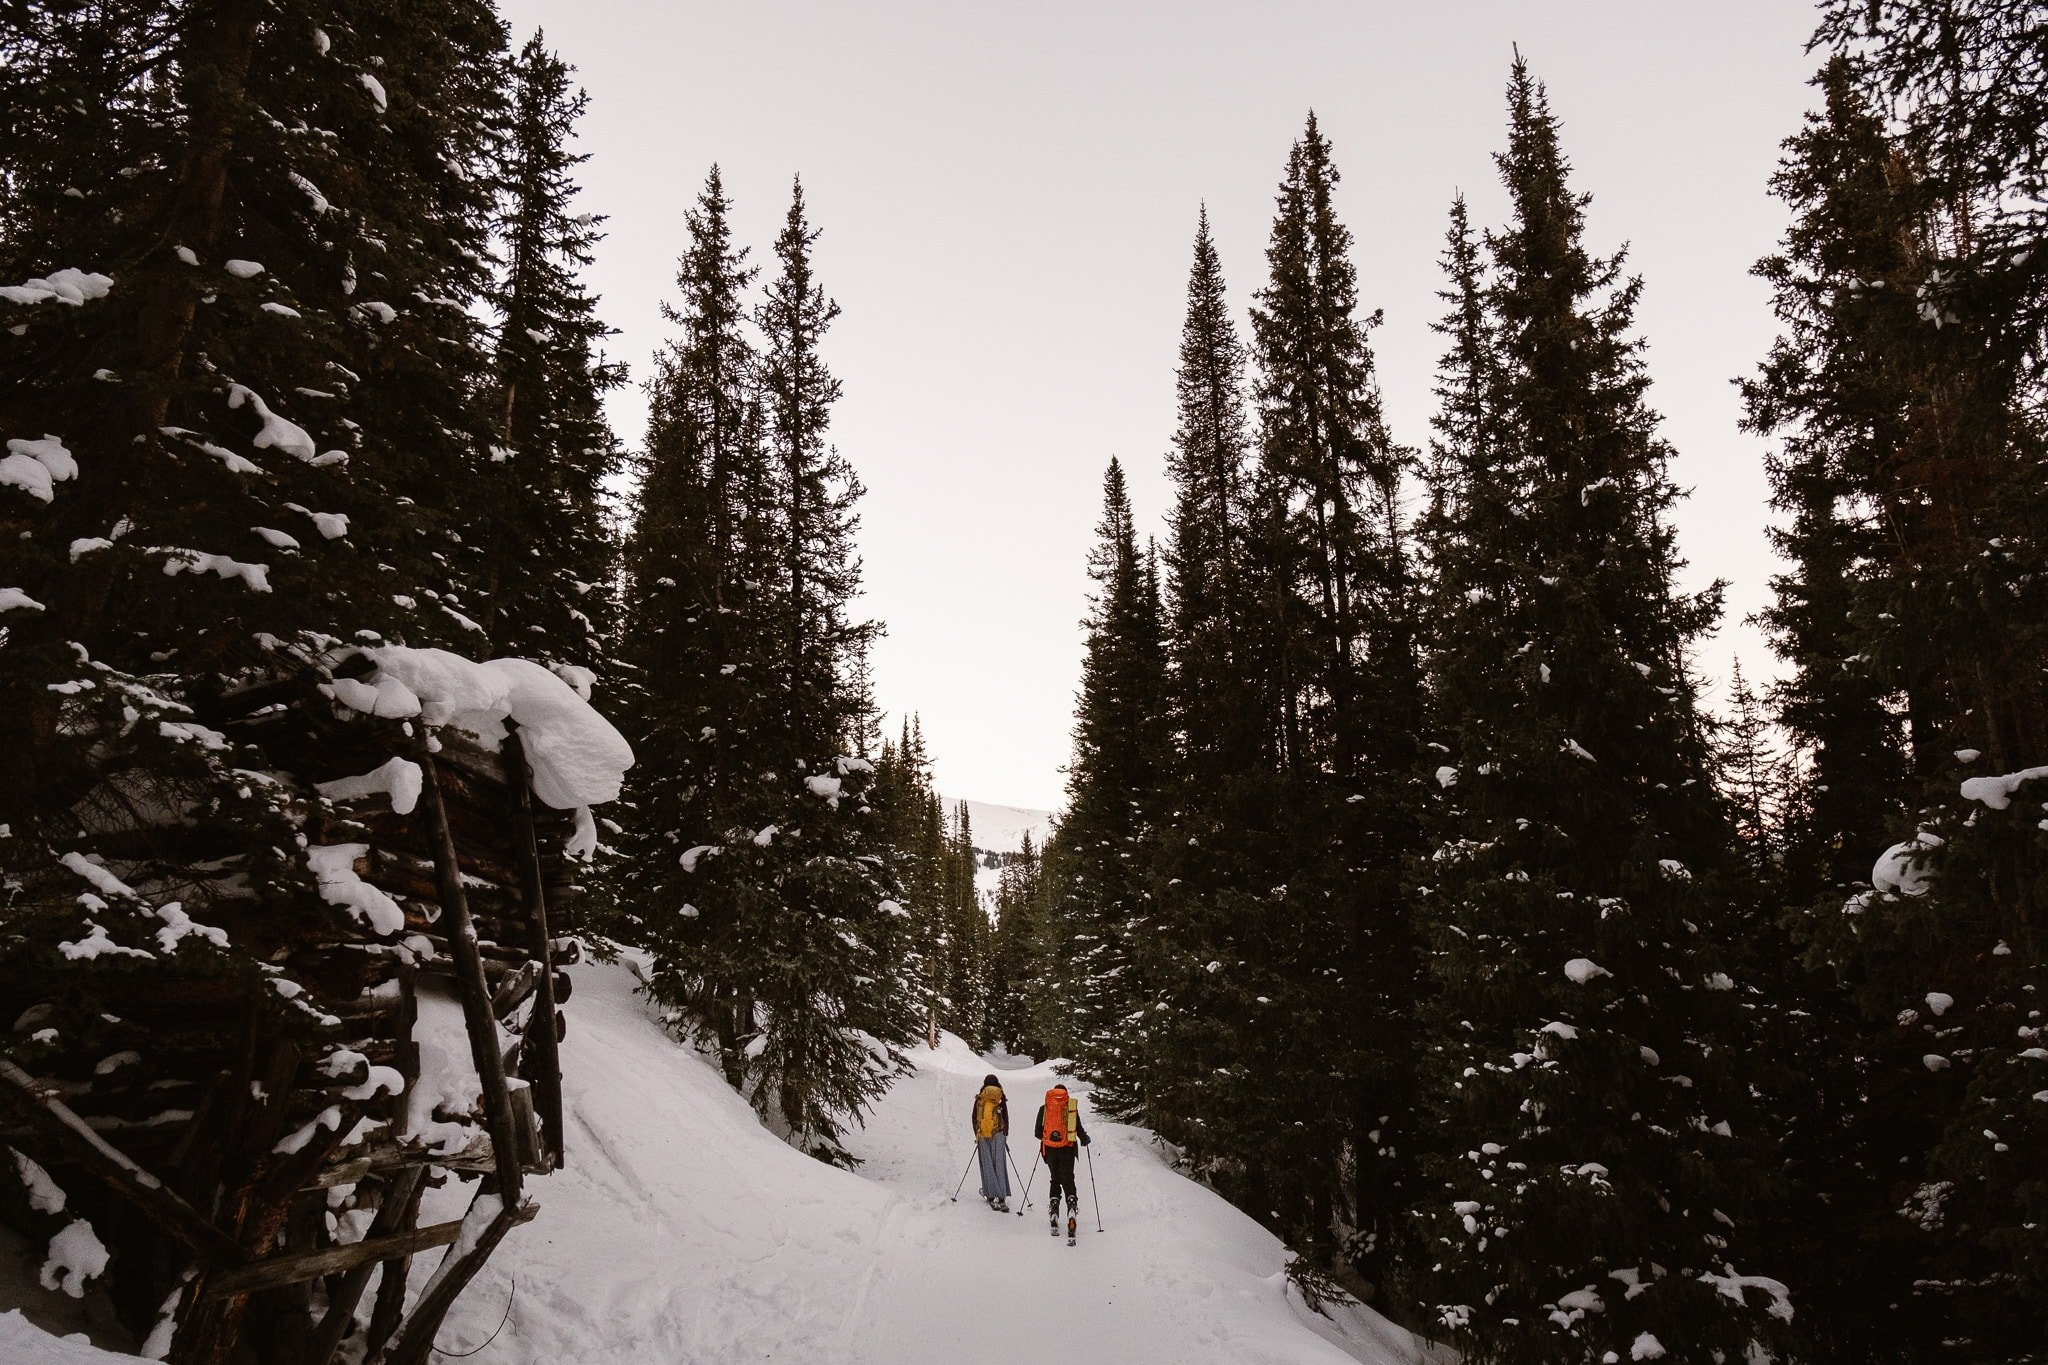 Bride and groom skiing while wearing backpacks, backcountry skiing elopement, Colorado winter wedding, Colorado mountain wedding photographer